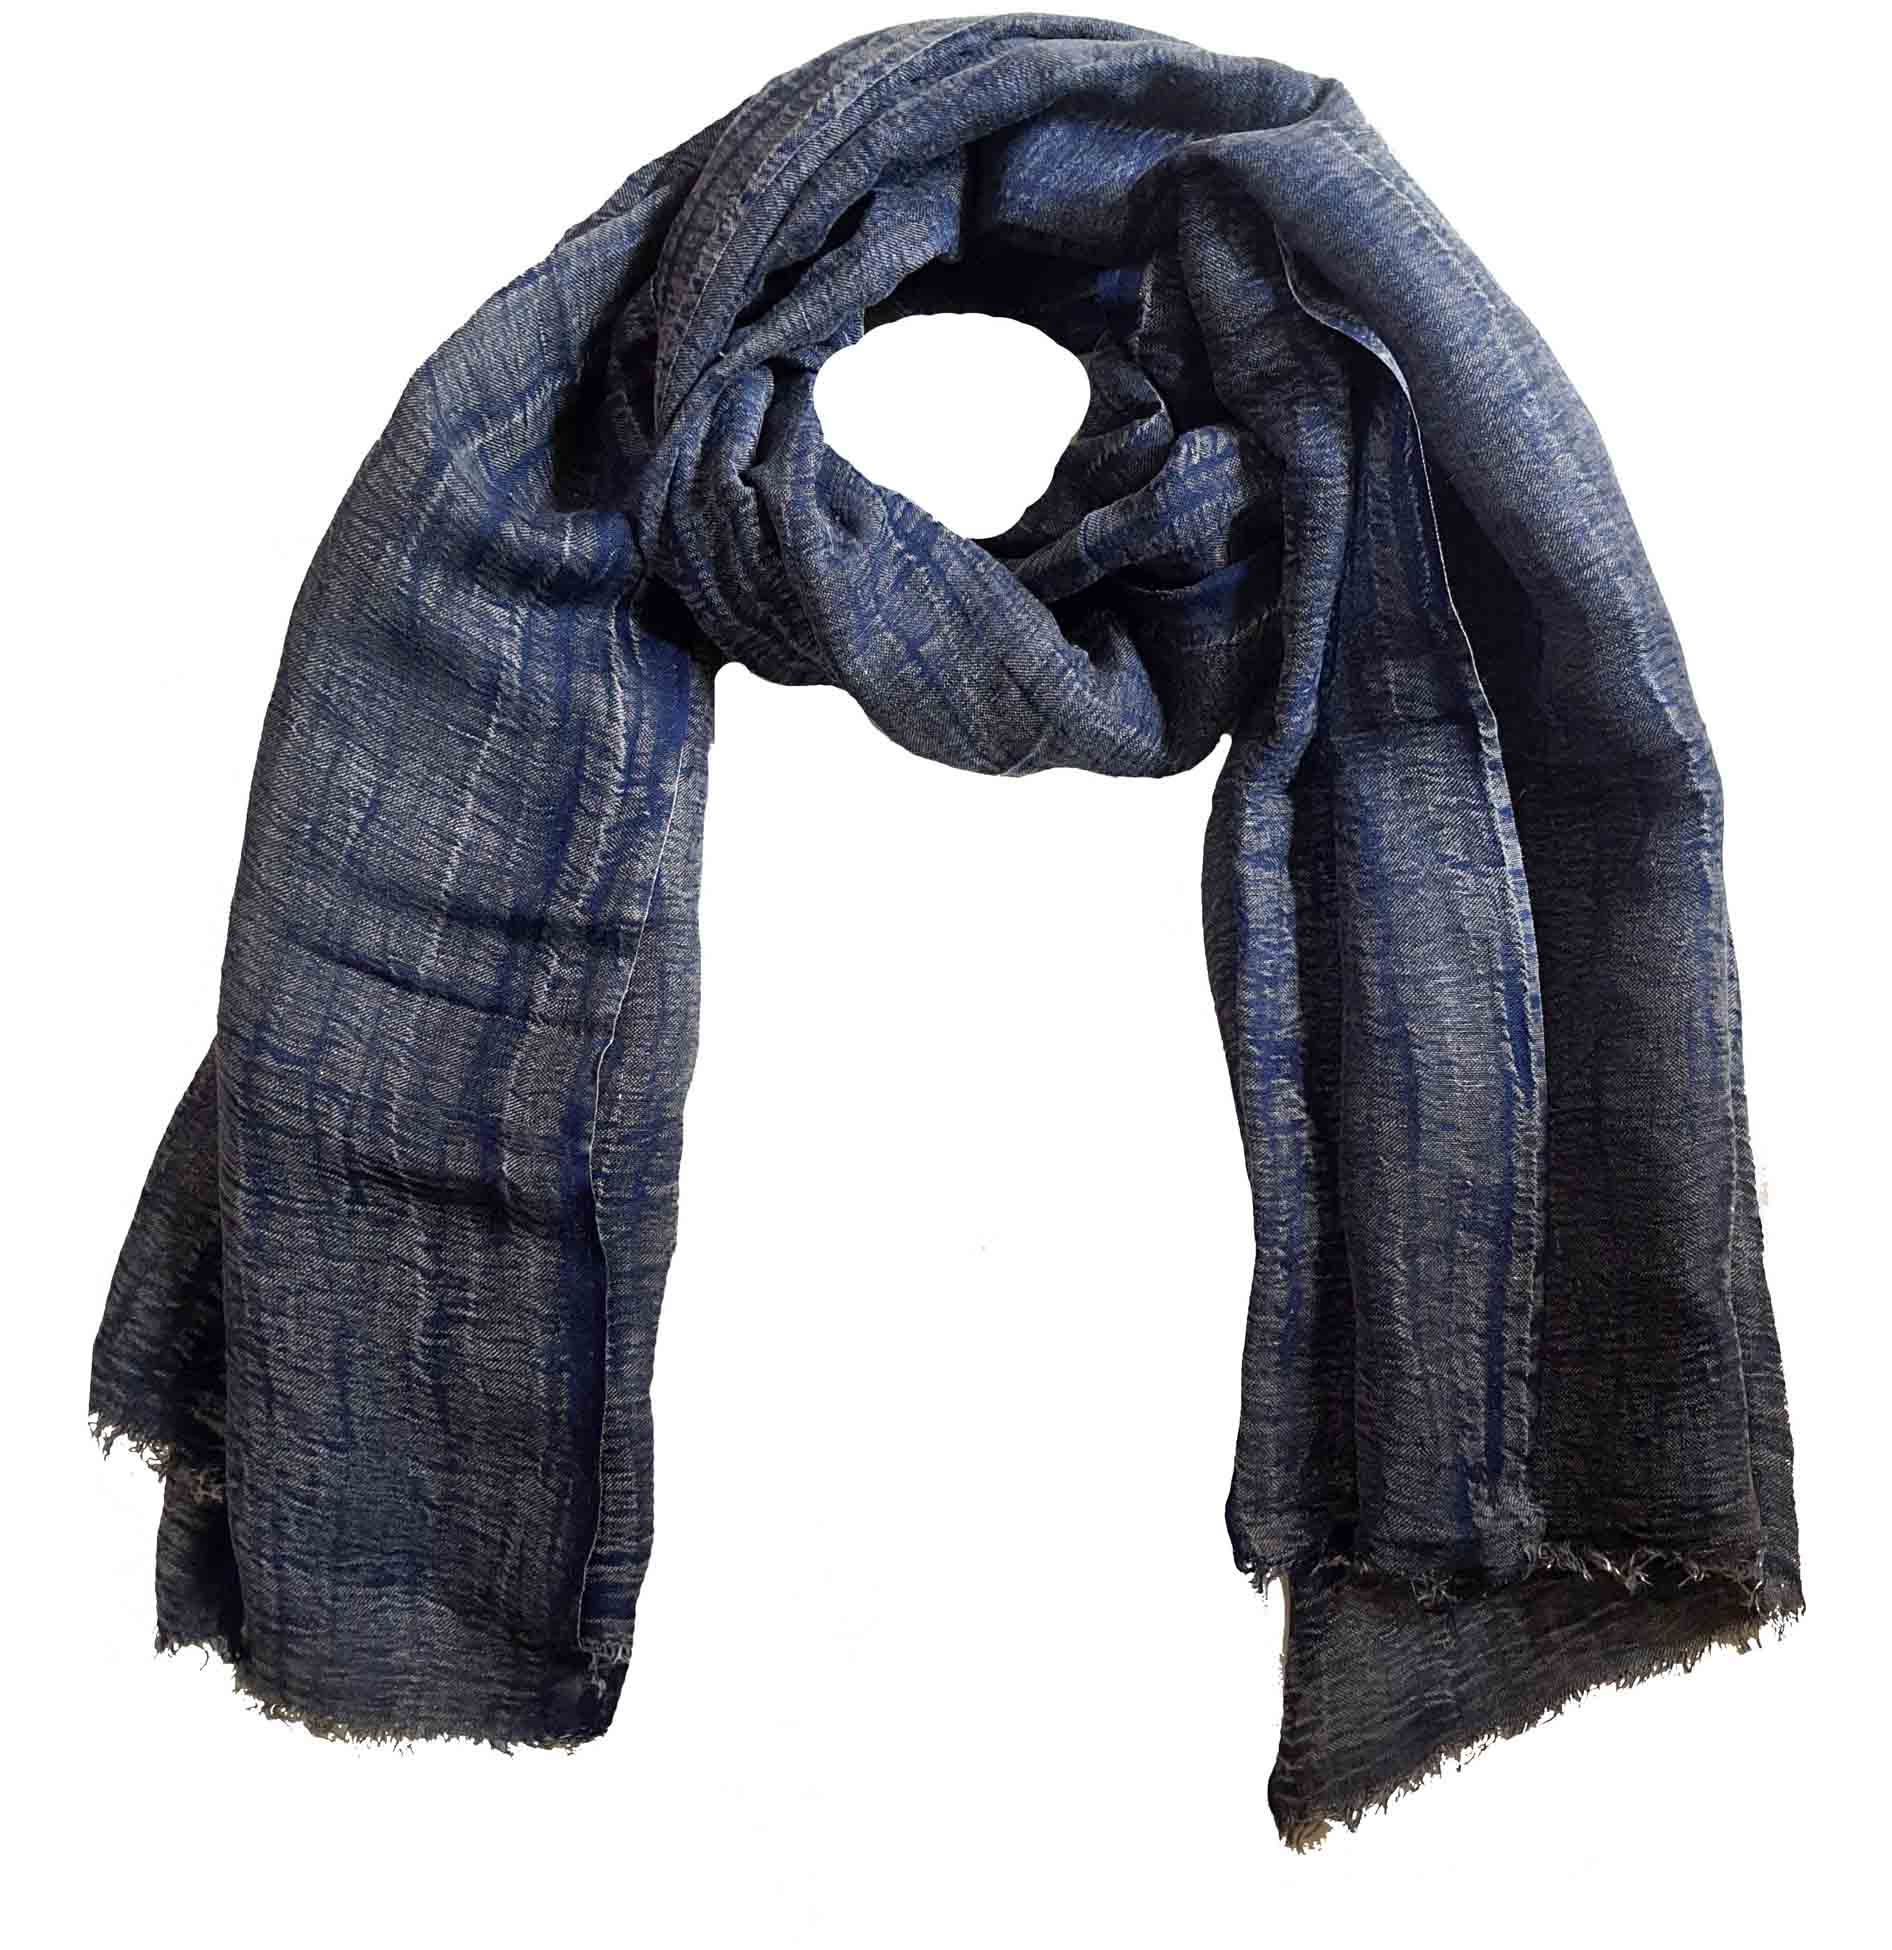 Linen Scarf Shawl and Wraps